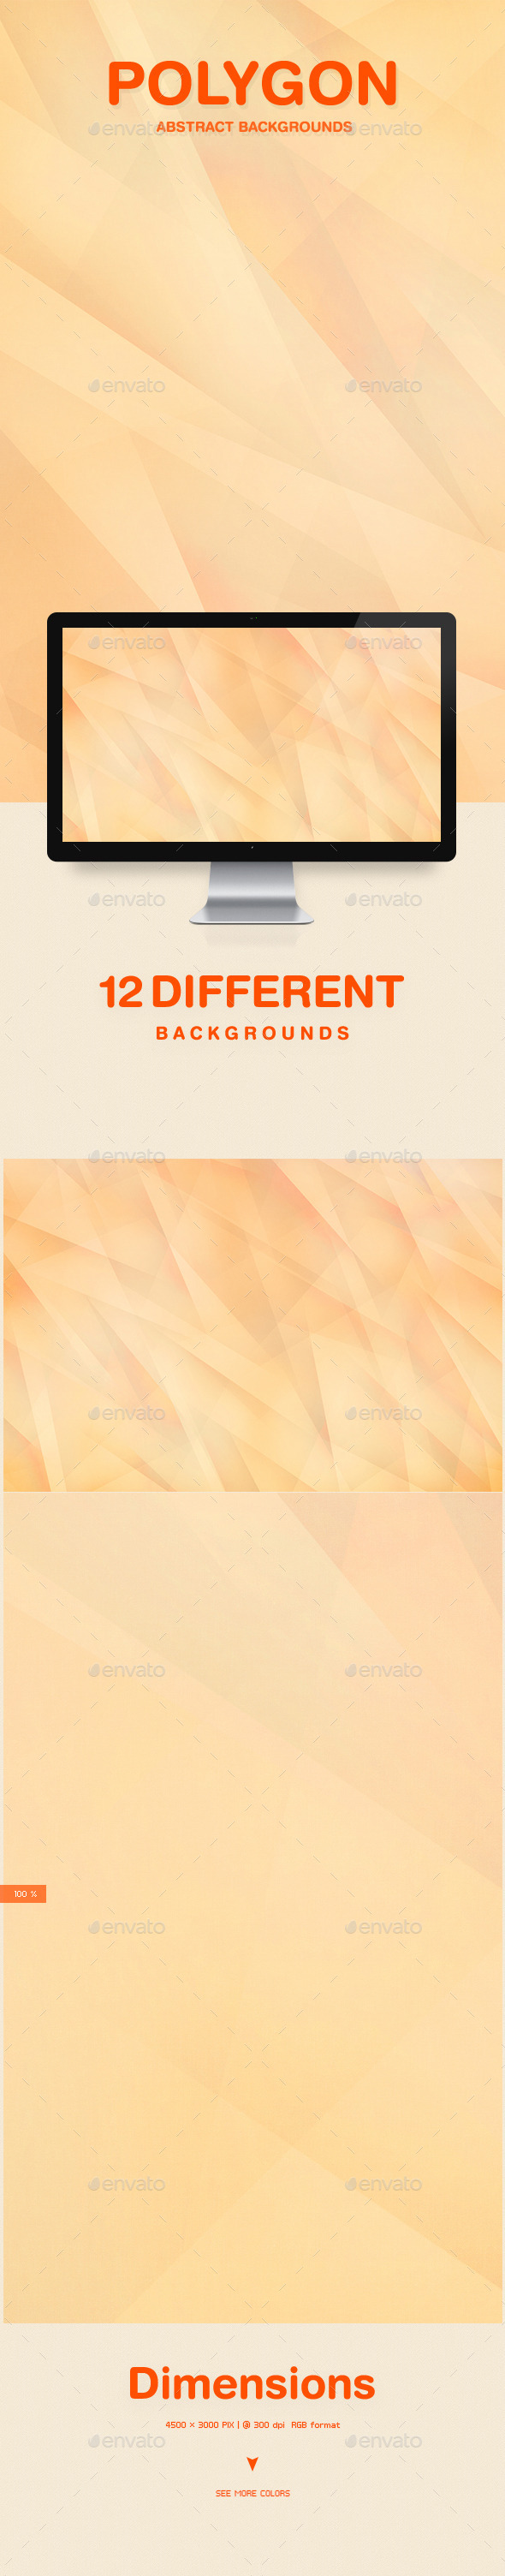 Polygon Abstract Backgrounds - Patterns Backgrounds